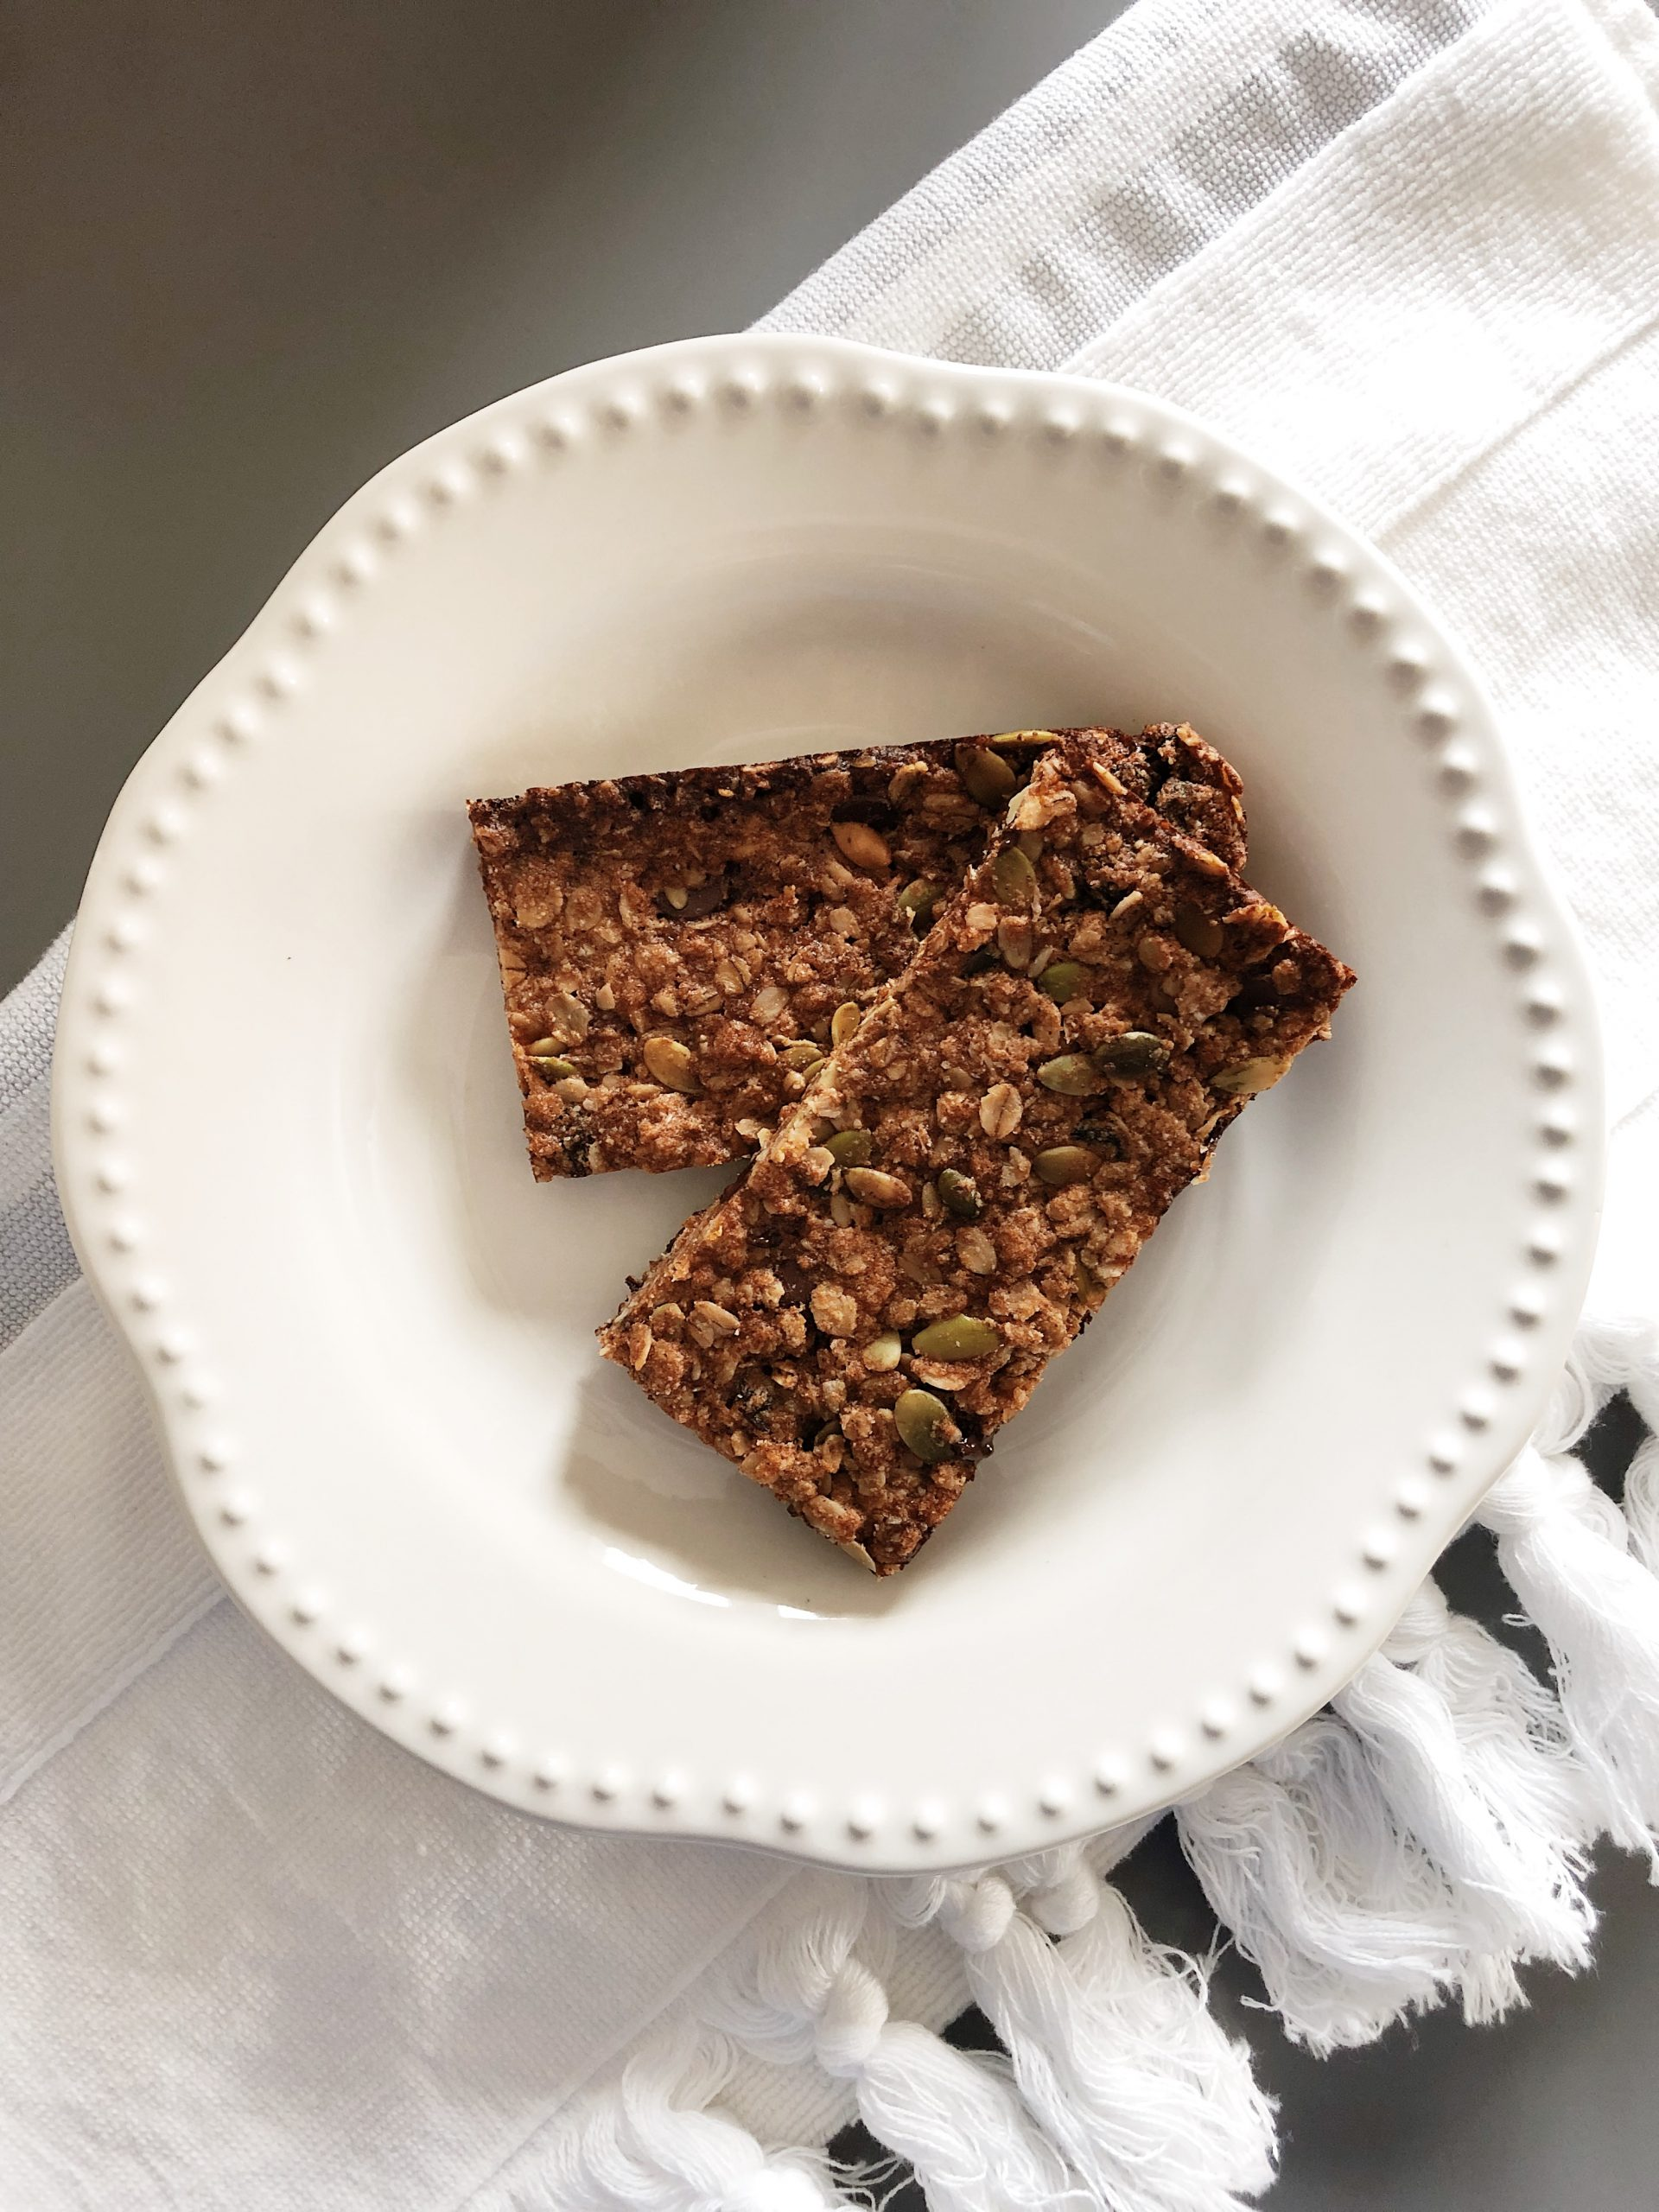 Image of two granola bars sitting on a plate